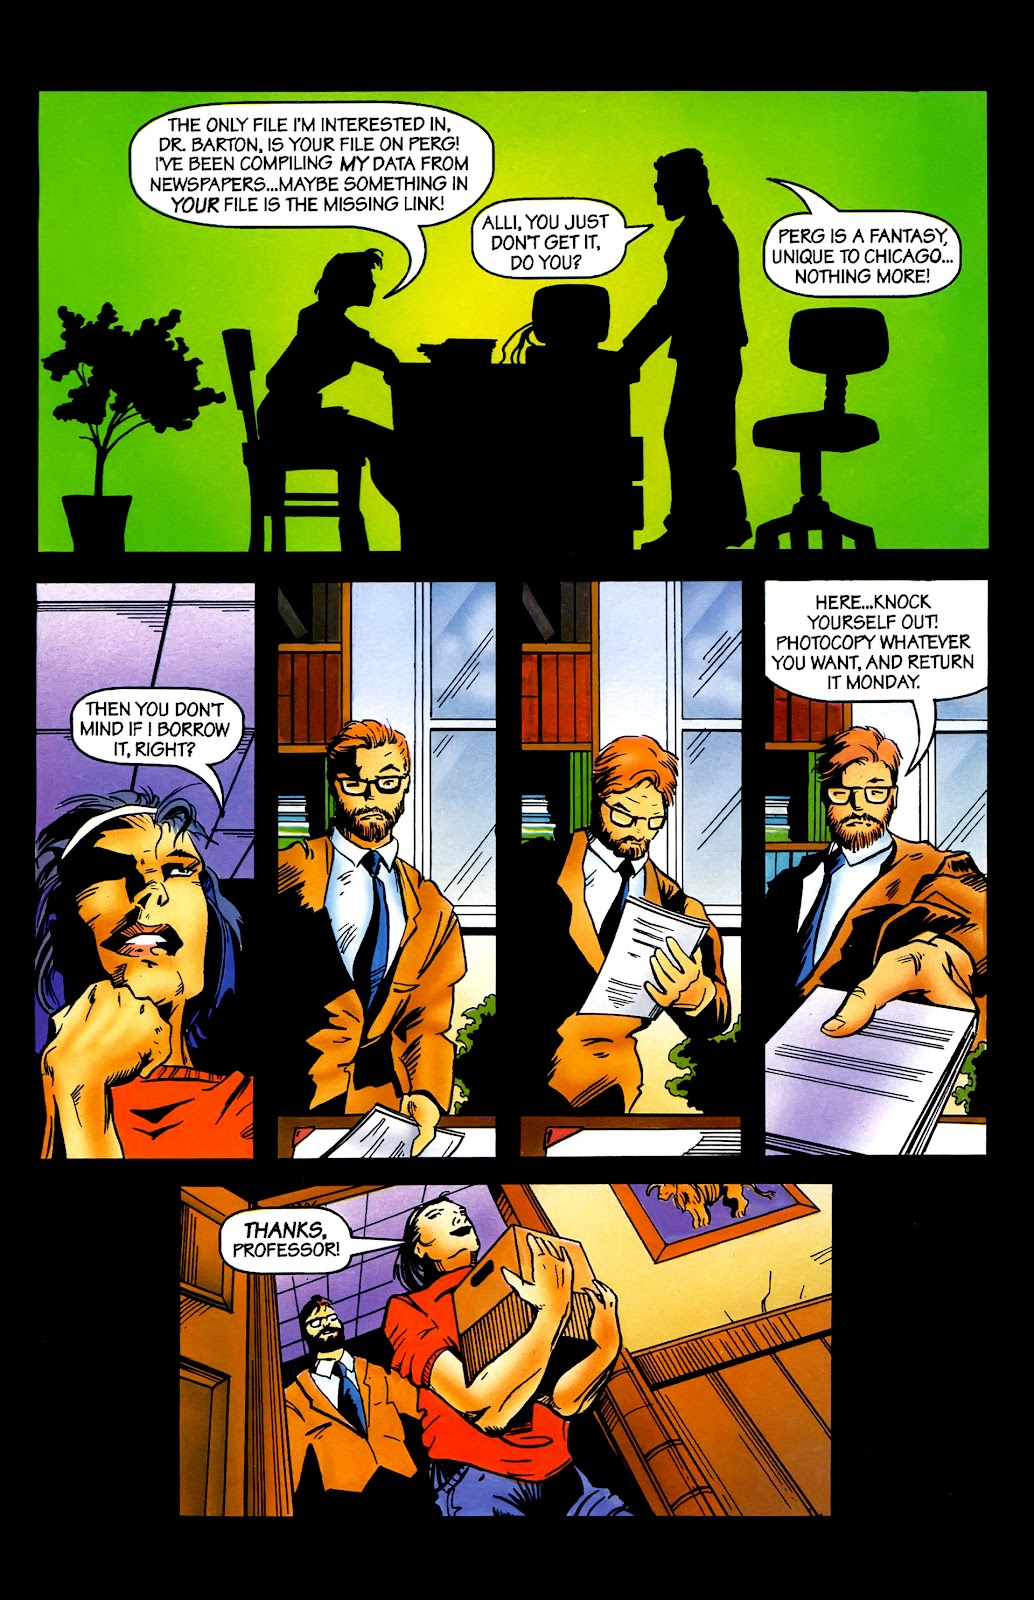 Read online Perg comic -  Issue #2 - 9